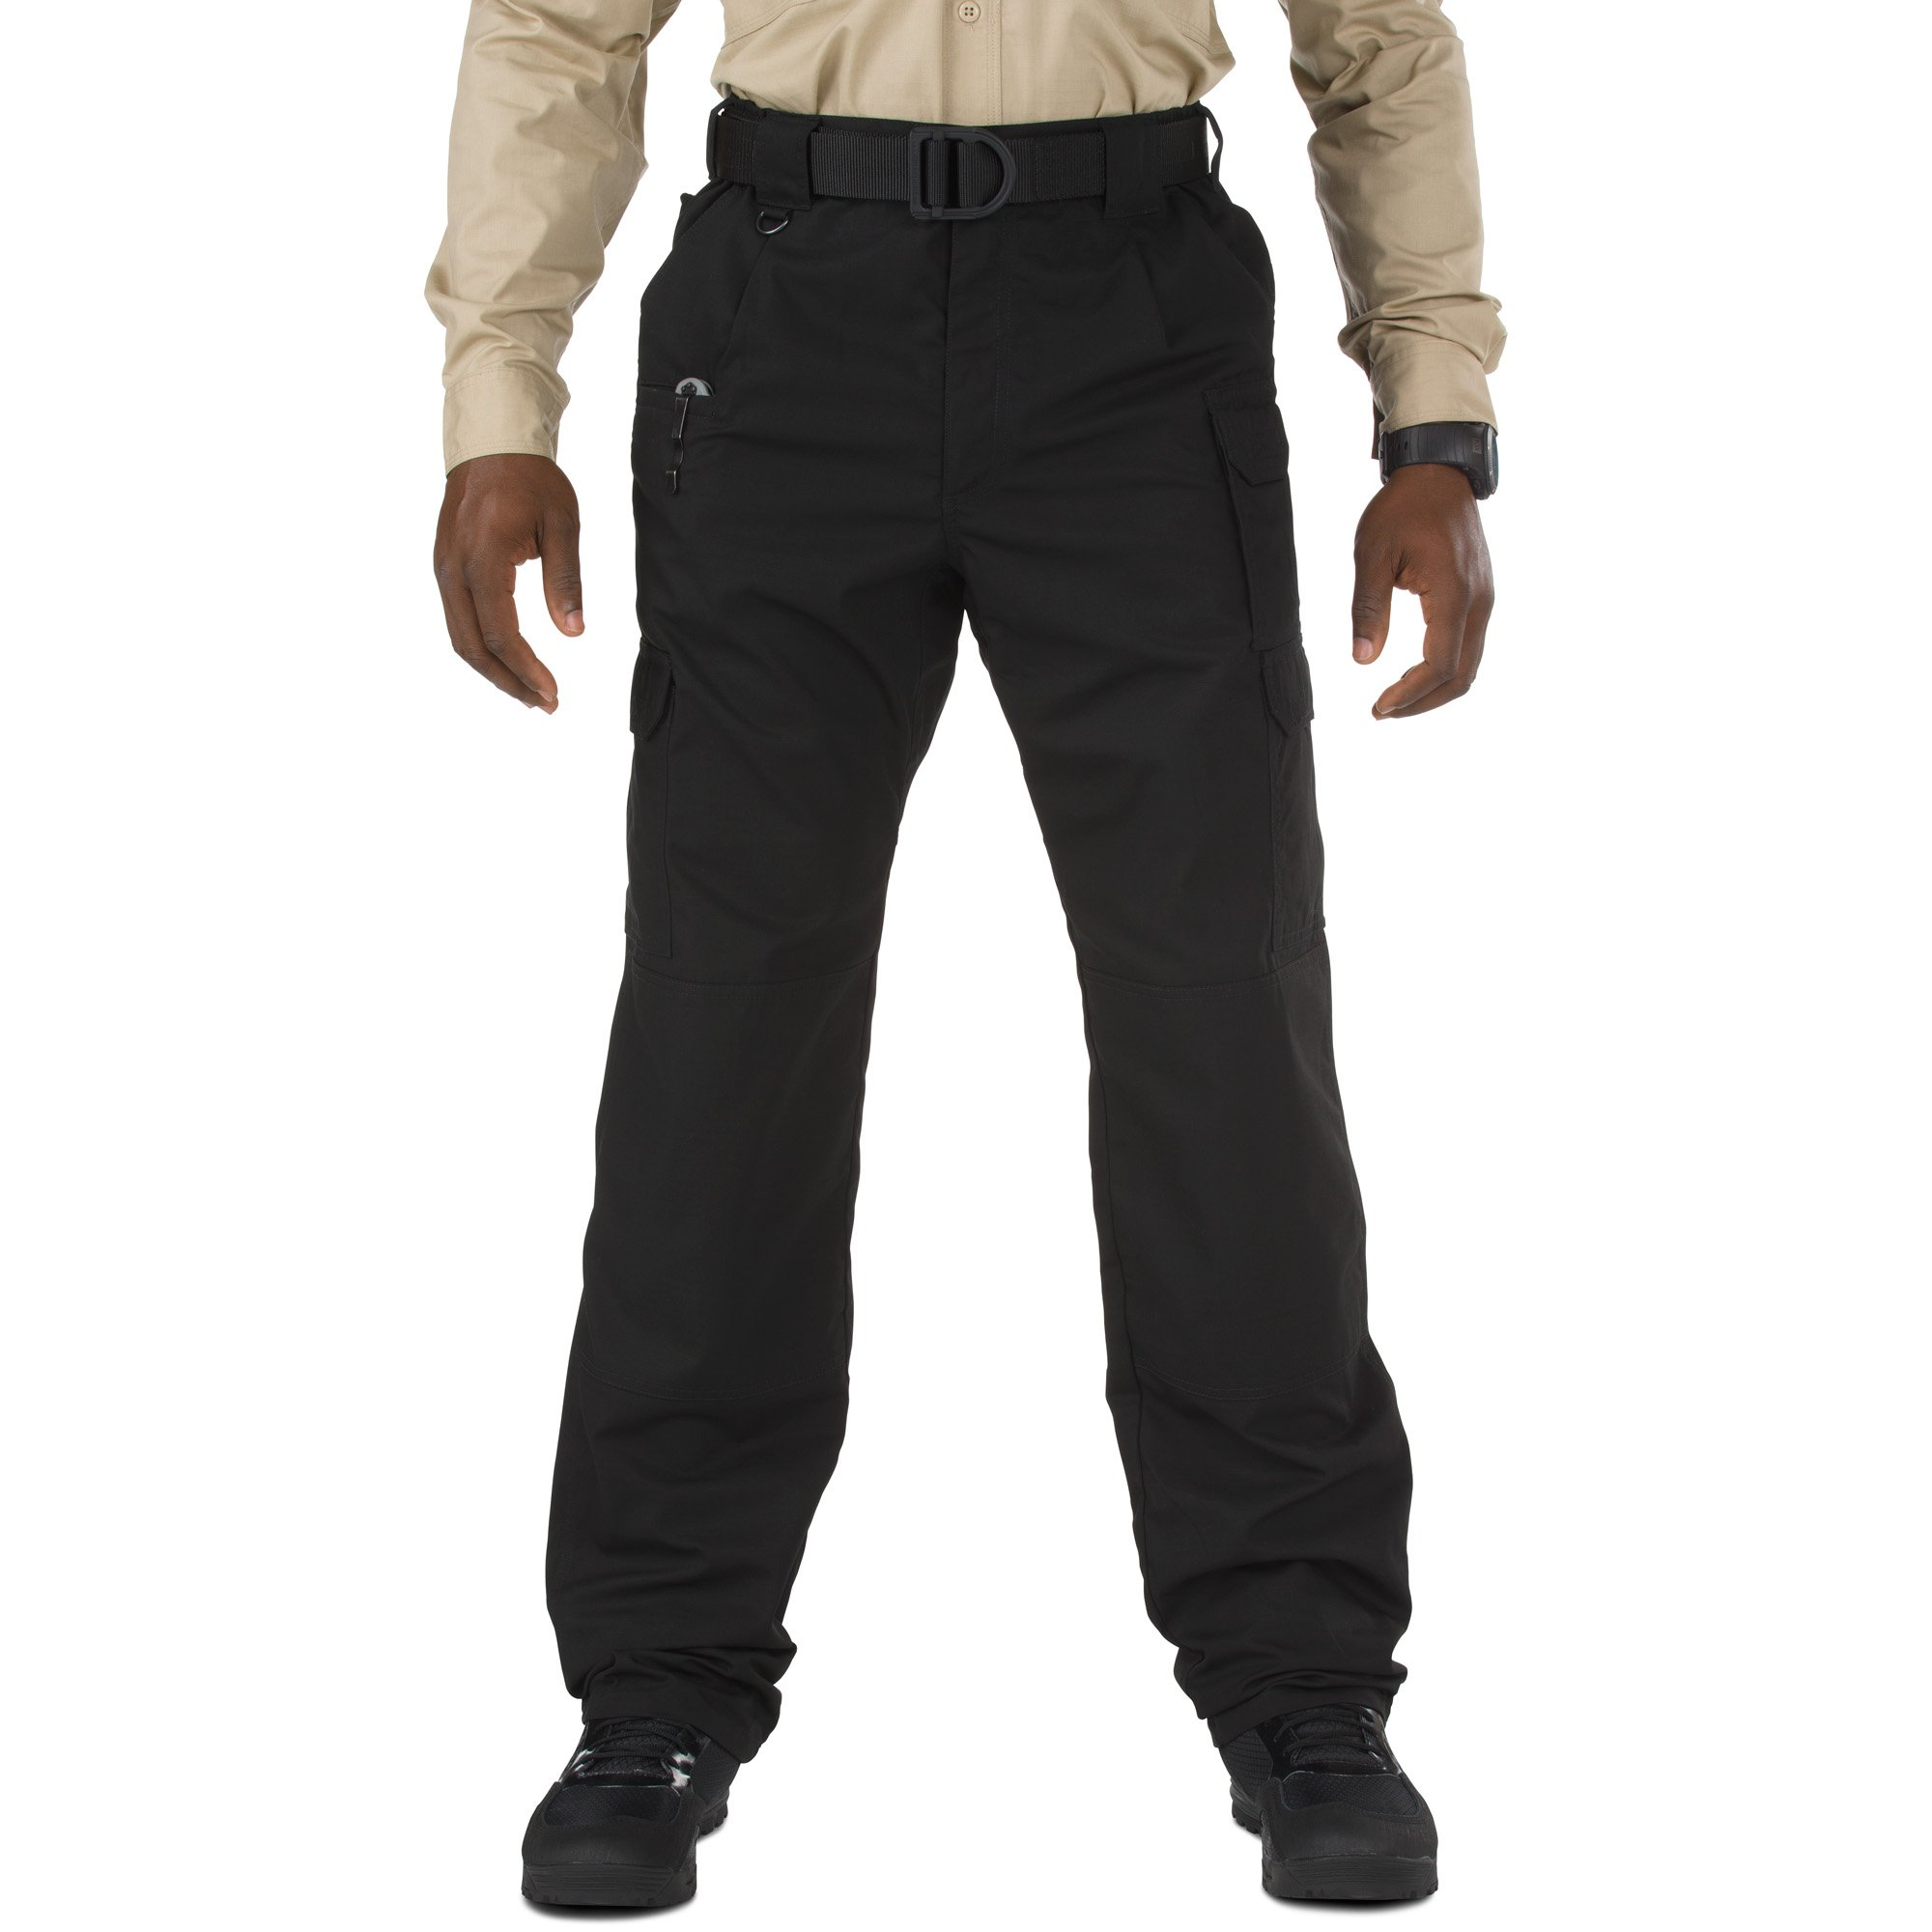 5.11 Men's TACLITE Pro Tactical Pants, Style 74273, Black, 40Wx32L by 5.11 (Image #3)